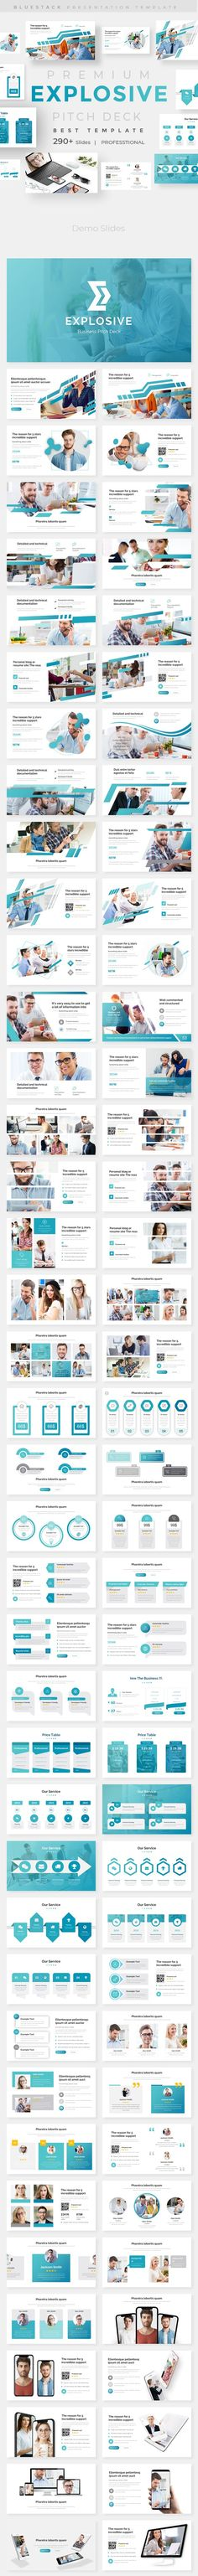 Explosive Business Pitch Deck Powerpoint Template Business Presentation by bluestack. Business Presentation Templates, Corporate Presentation, Presentation Design Template, Presentation Slides, Business Templates, Design Templates, Creative Powerpoint Templates, Keynote Template, Pitch